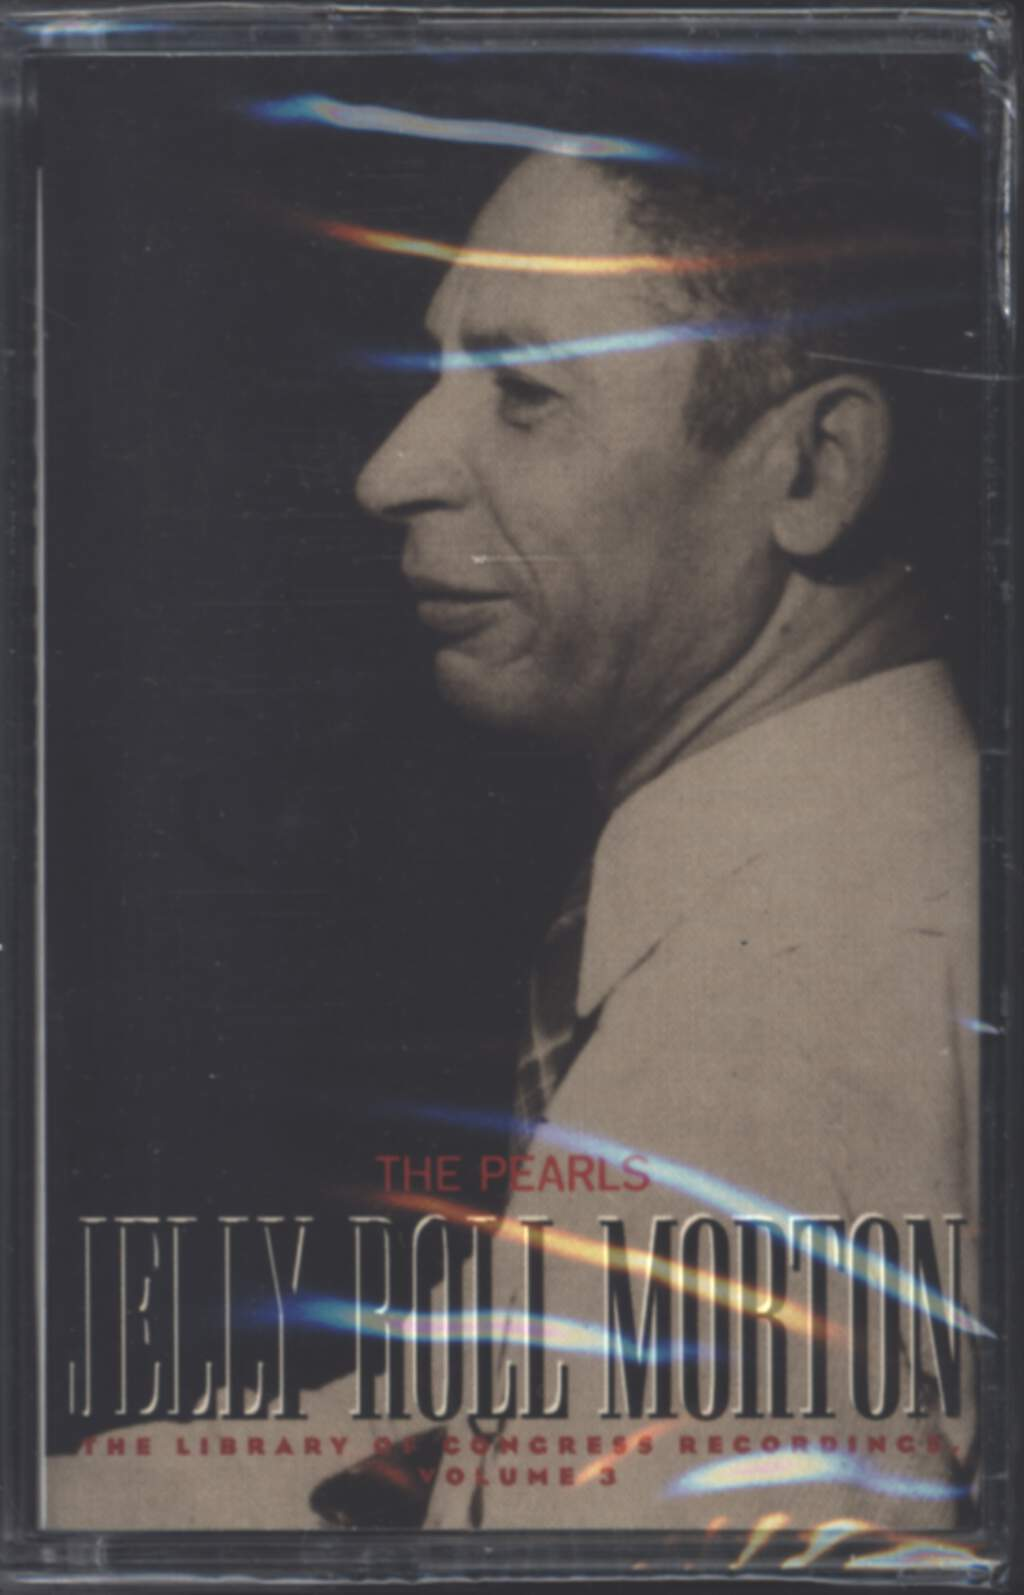 Jelly Roll Morton: The Pearls: The Library Of Congress Recordings, Volume 3, Tape